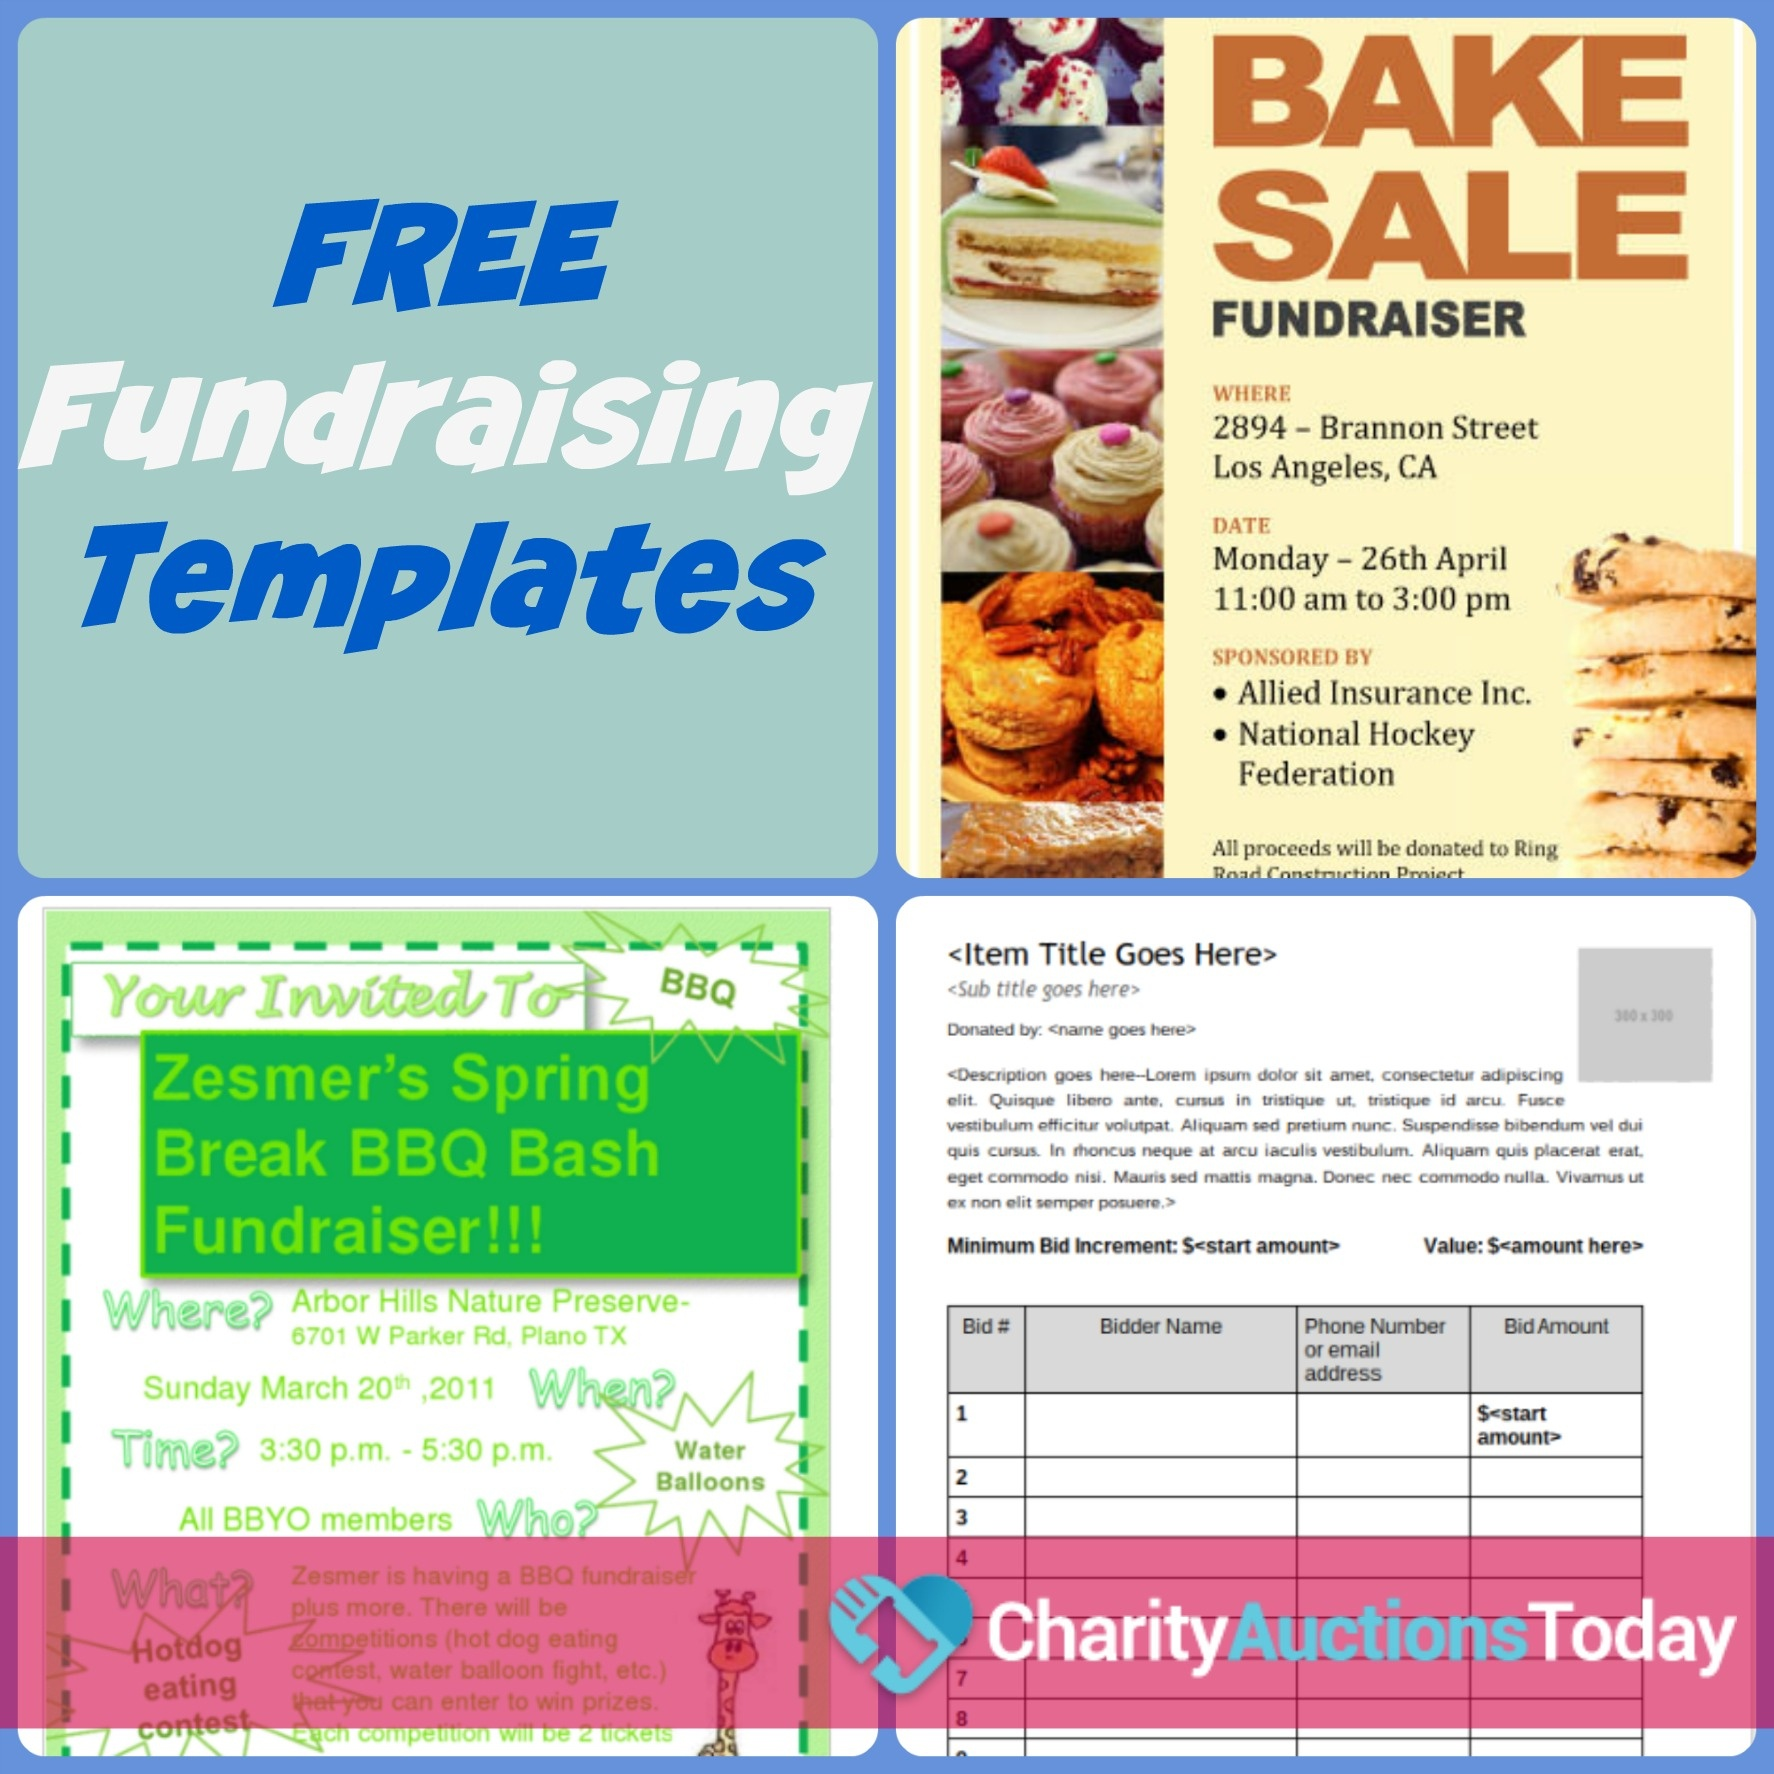 Free Fundraiser Flyer | Charity Auctions Today - Free Printable Flyers